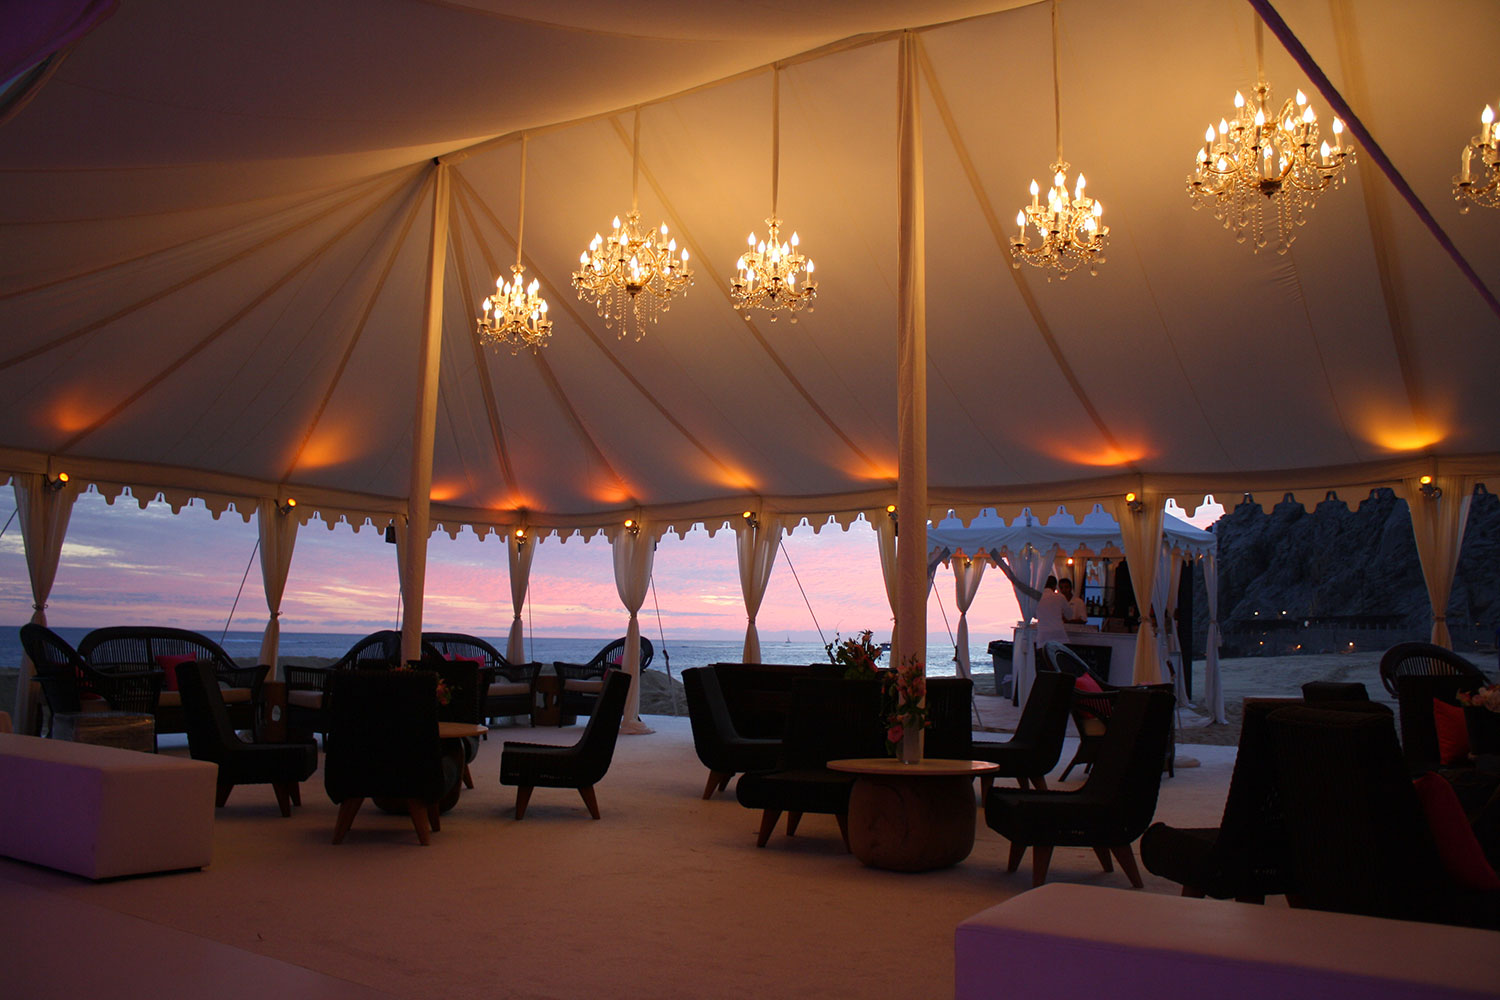 raj-tents-destination-events-cabo-beach-tent.jpg